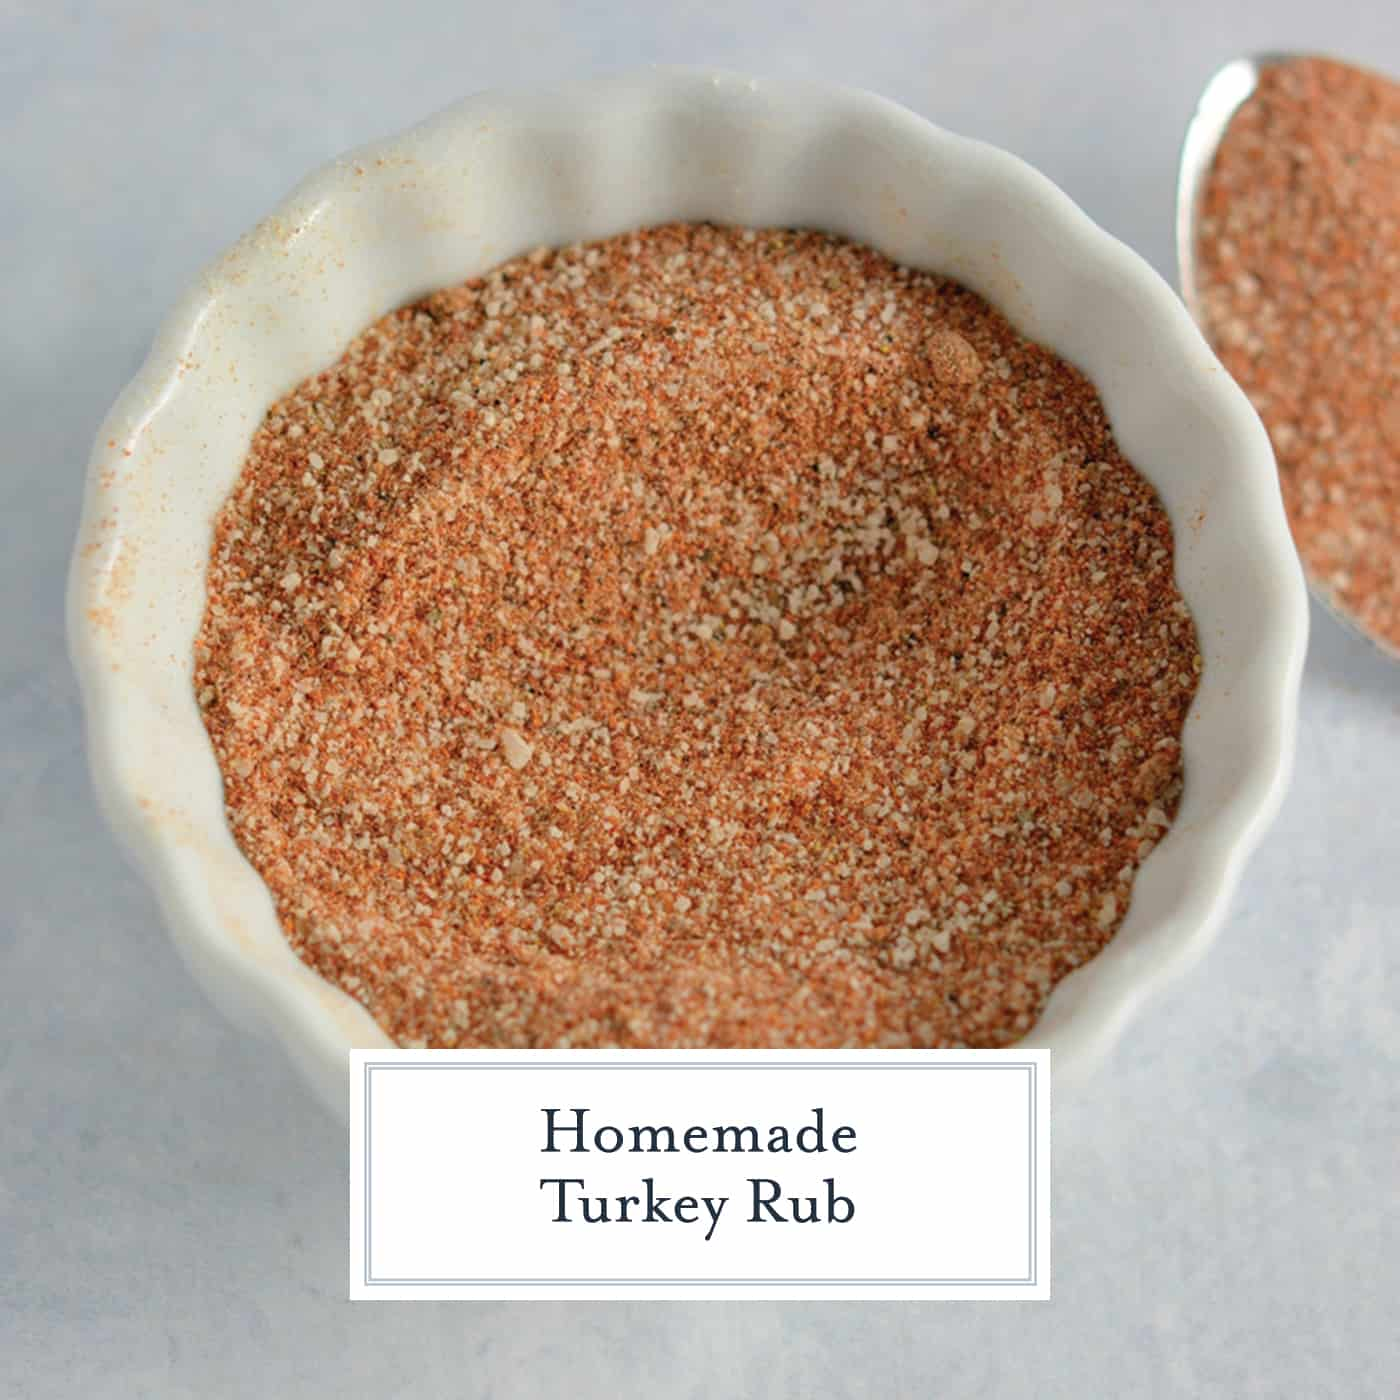 Homemade Turkey Rub is a blend of 6 easy spices and herbs to make for a flavorful and delicious roast turkey! Use it on chicken, beef and more! #turkeyrubrecipe #homeademturkeyrub #thanksgivingturkey www.savoryexperiments.com